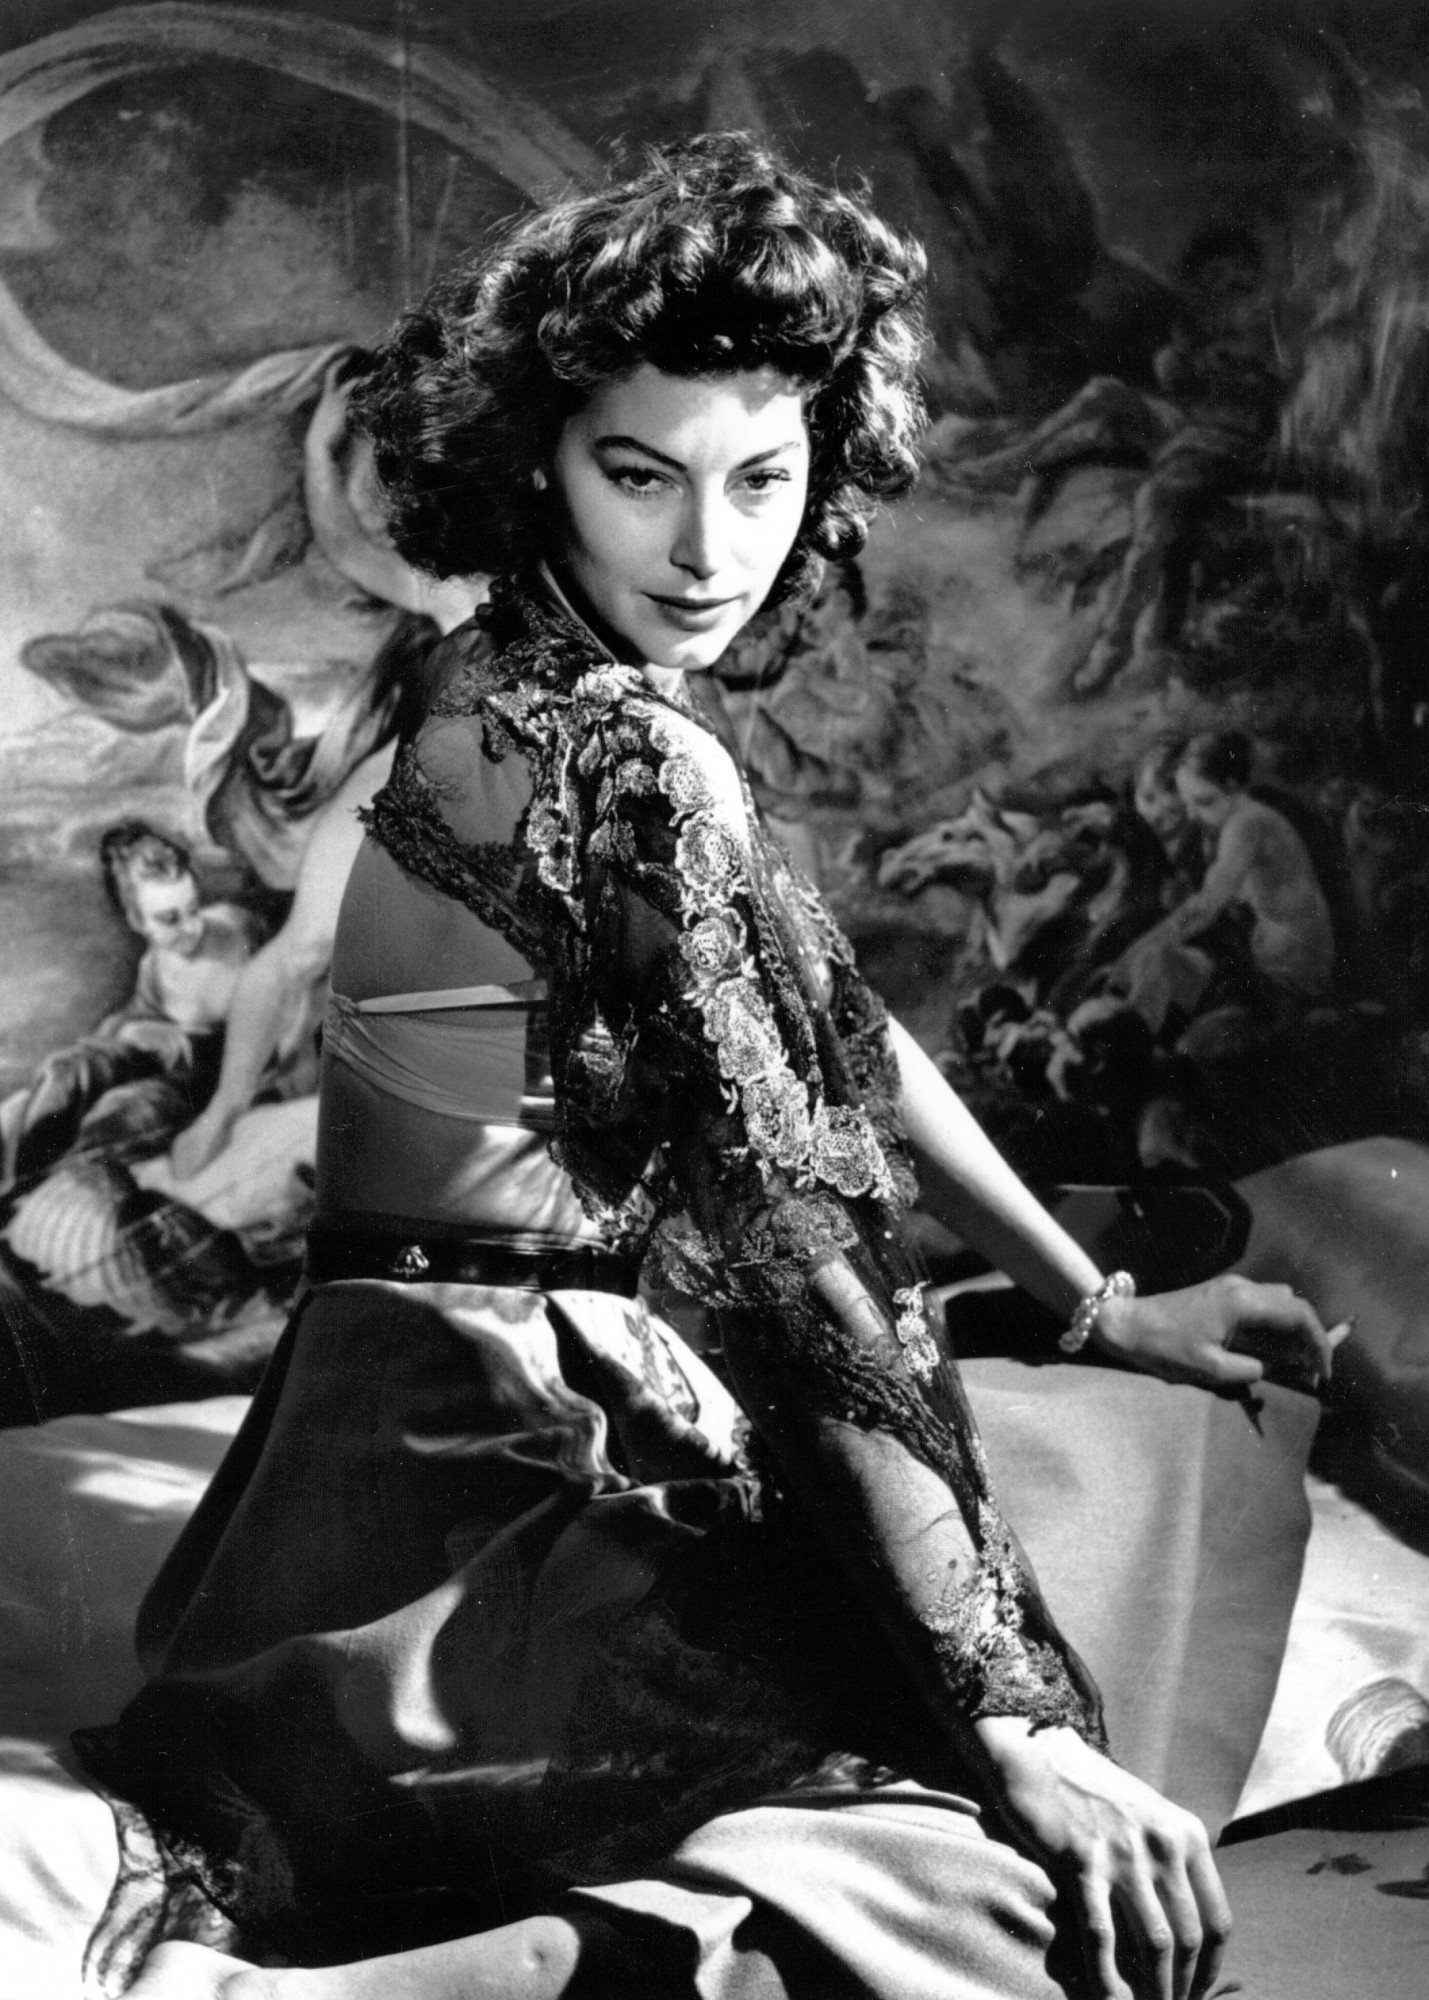 1950: Sensuous Hollywood star Ava Gardner (1922-1990) poses in front of a painted backdrop. She appeared in such films as 'The Killers' (1946) and 'The Barefoot Contessa' (1954) and retired to London in the 1980's. (Photo by Baron/Getty Images)